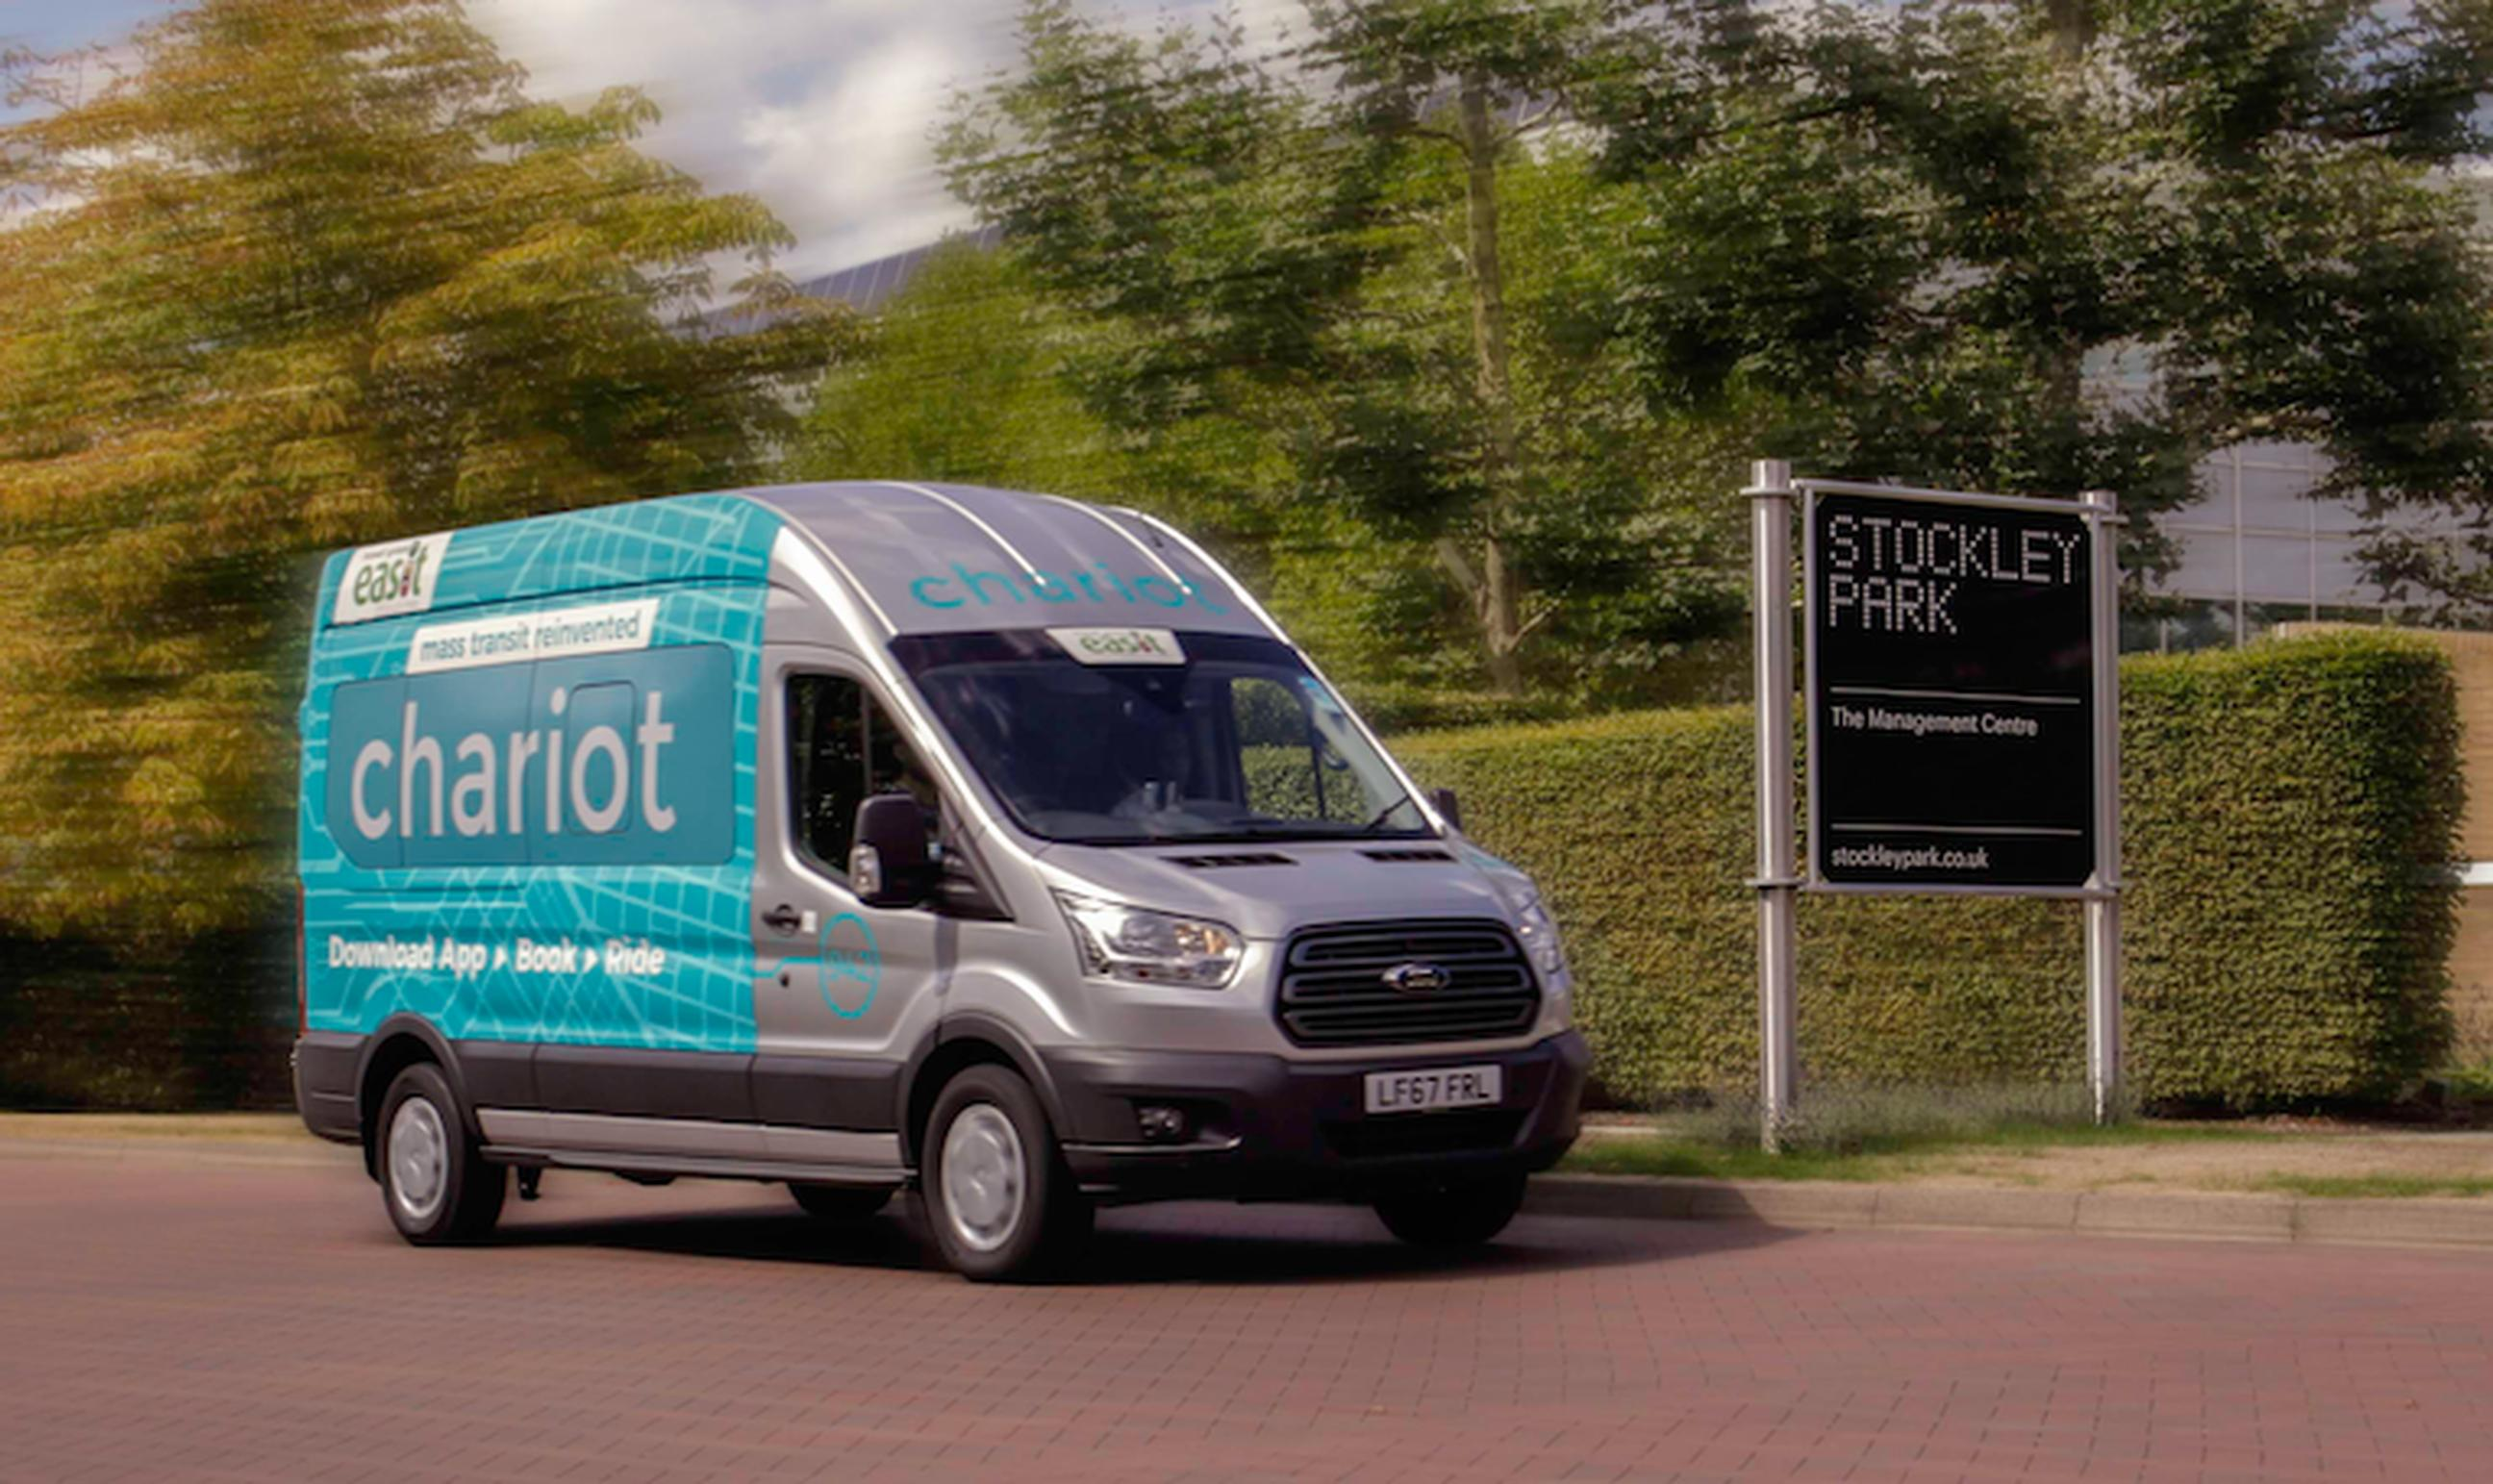 The new Chariot route is a collaboration between Ford and sustainable transport group easitNETWORK.